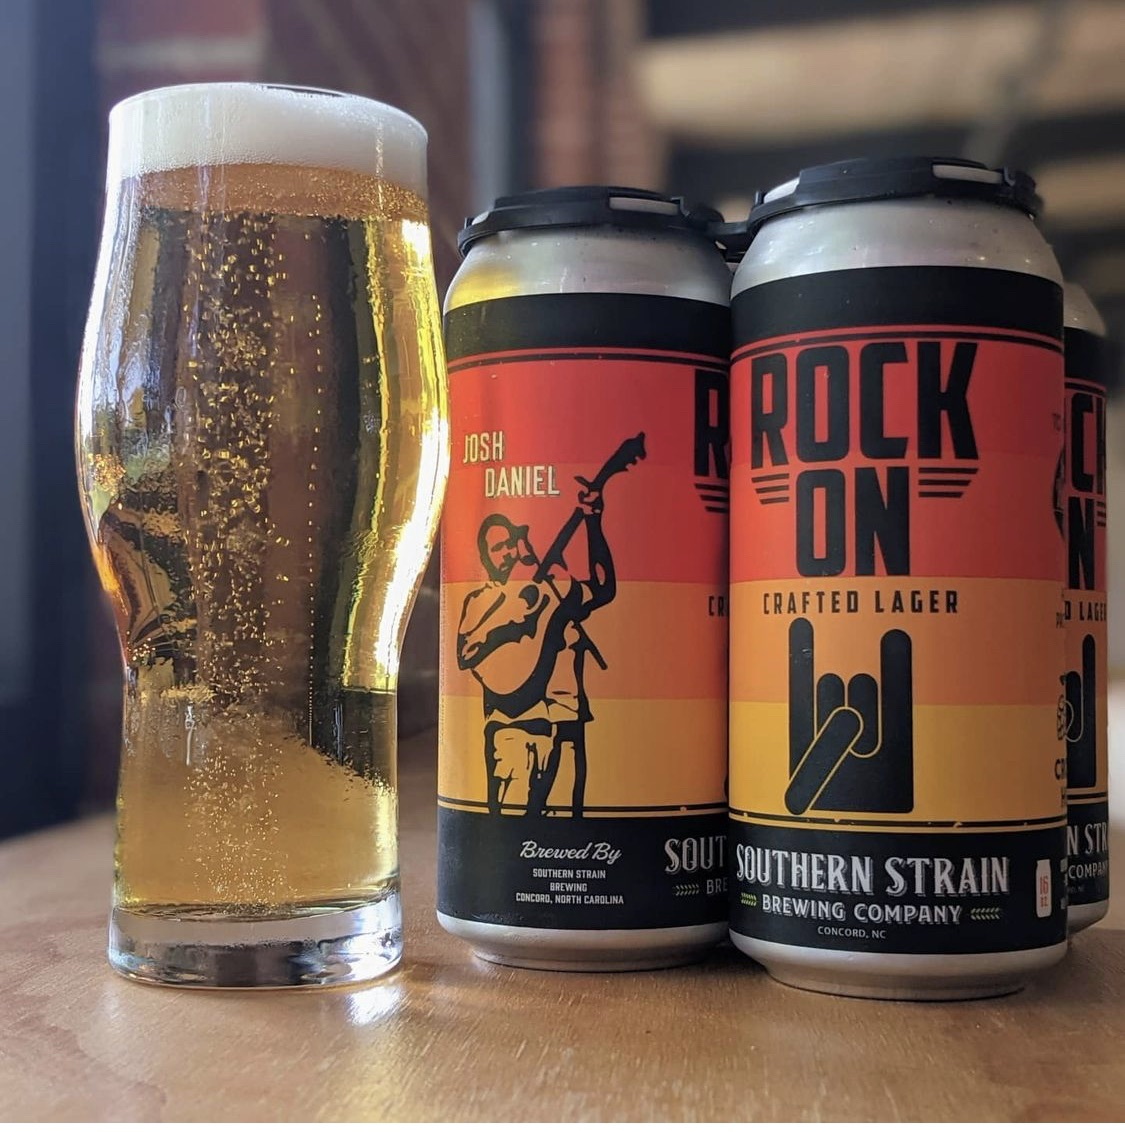 Rock On Crafted Lager